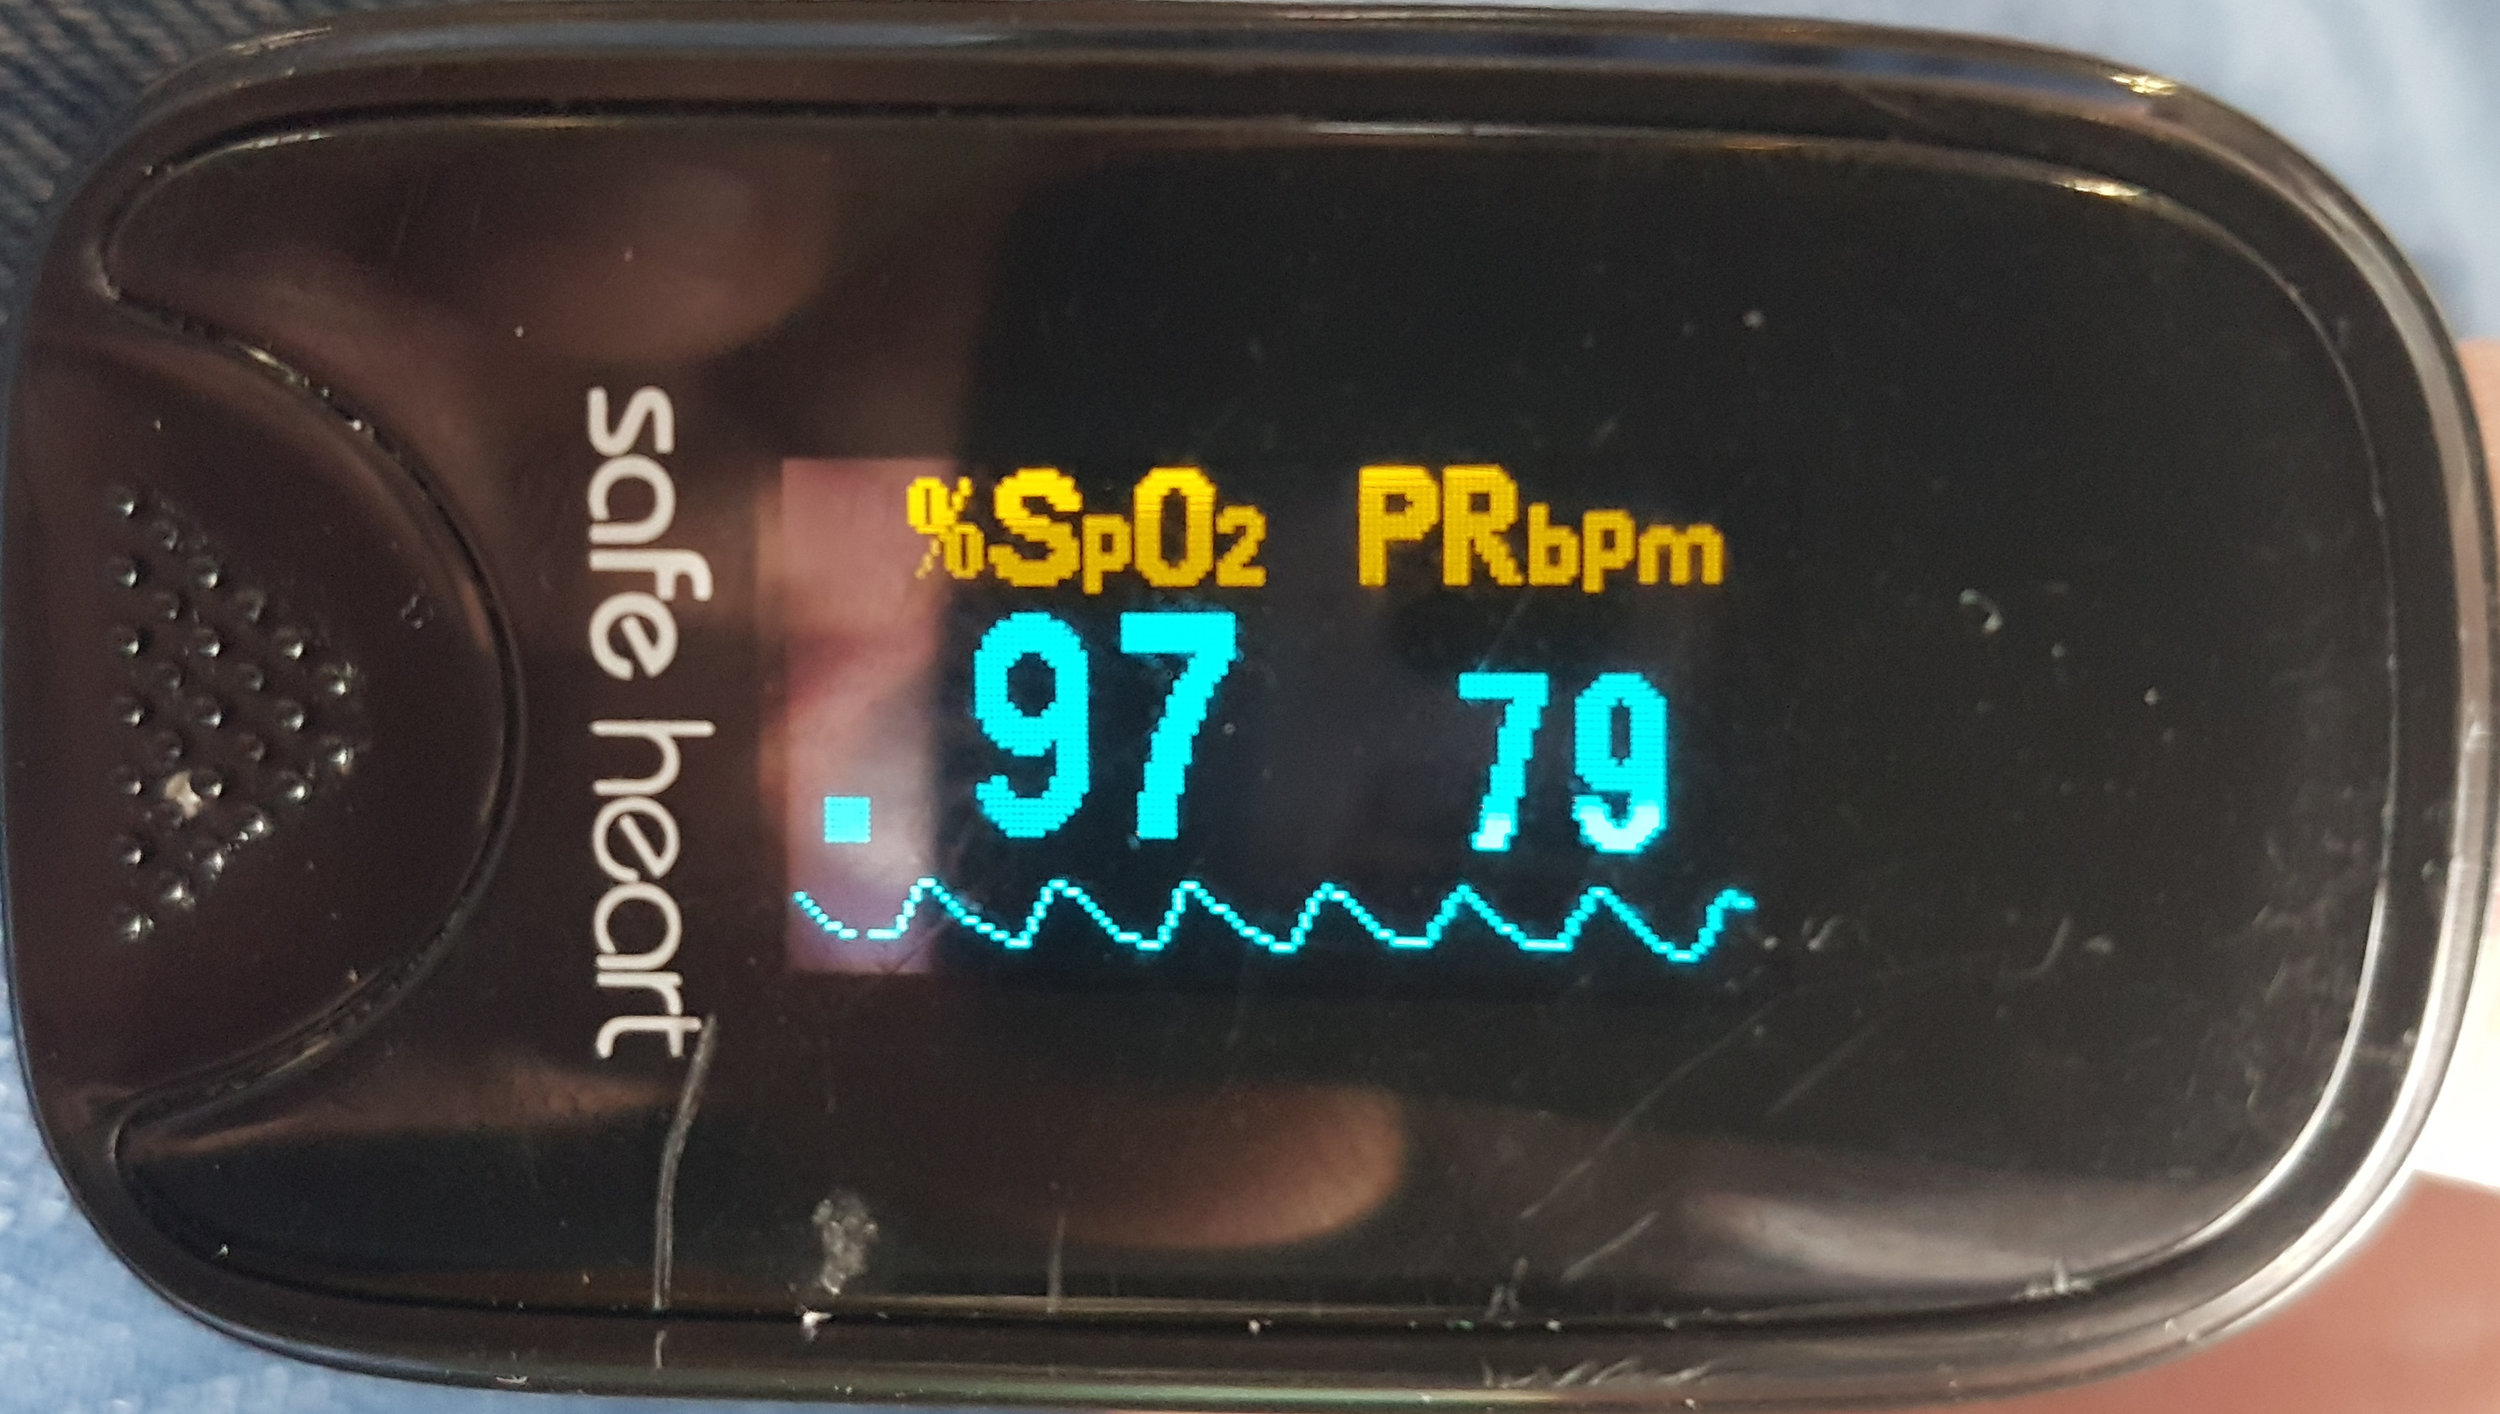 Strong pulse pressure but without an obvious dicrotic notch indicating good pulse pressure and perfusion but increased arterial resistance.